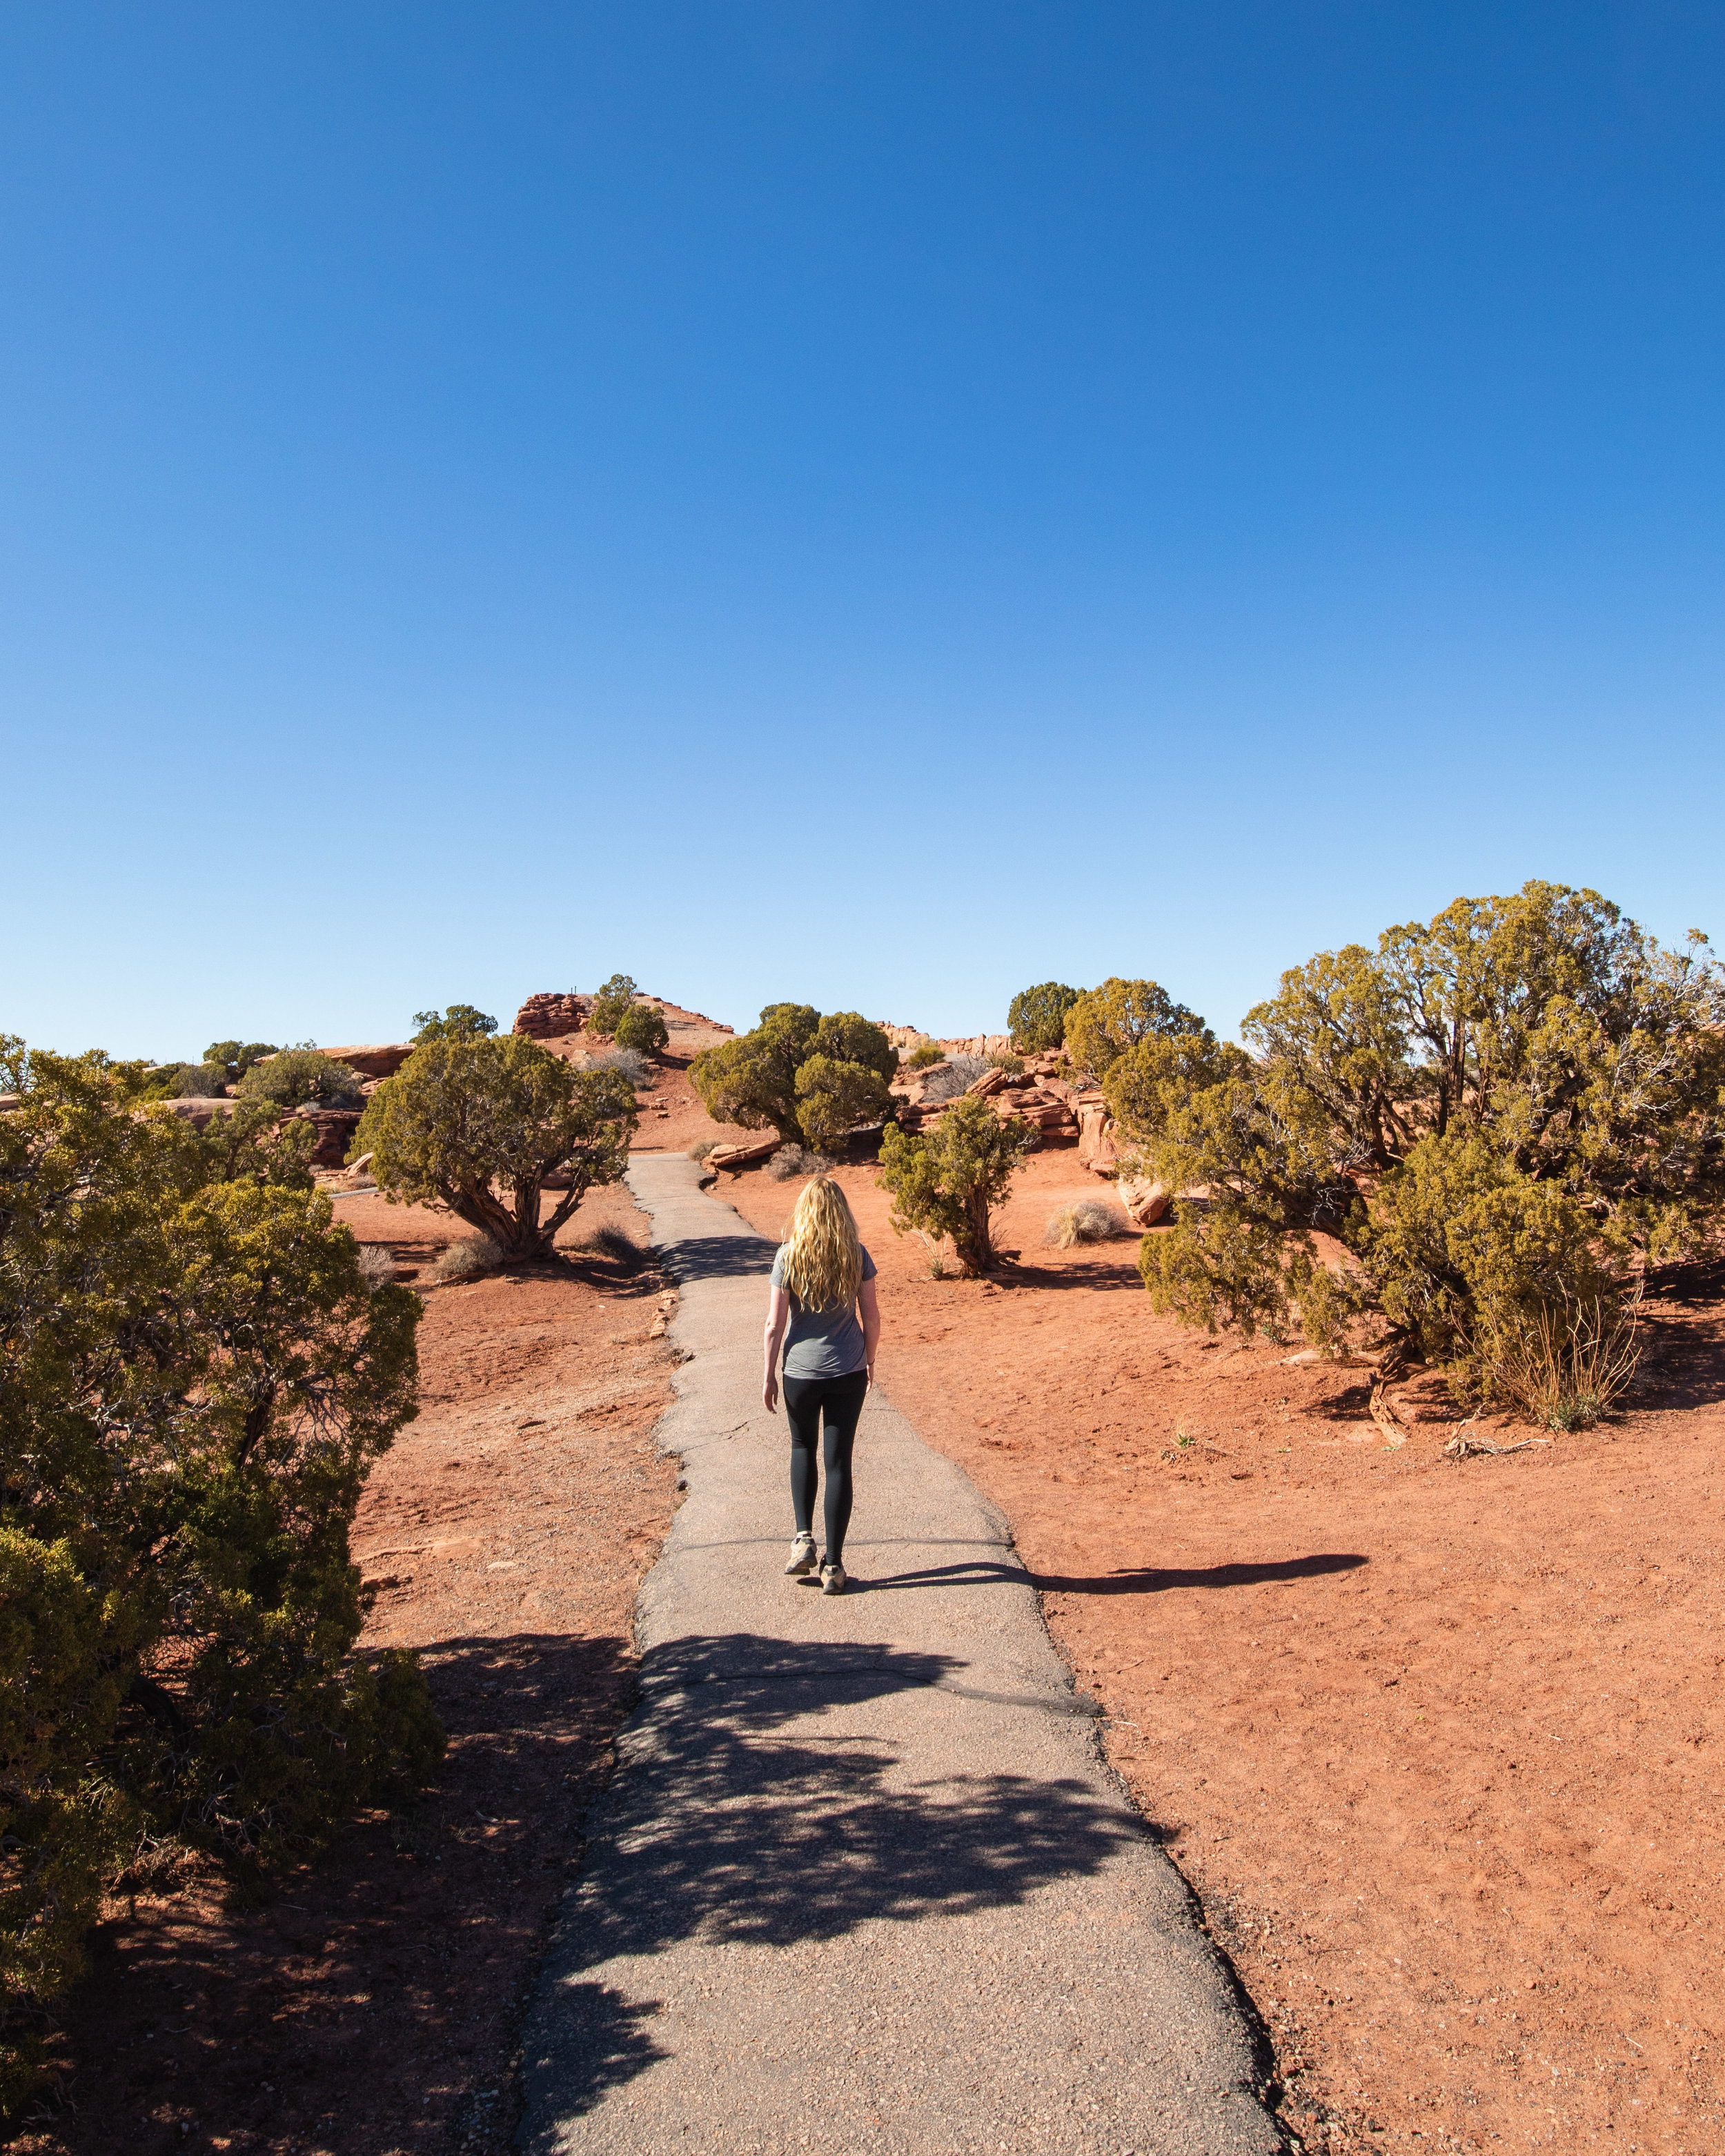 The East Rim Trail at Dead Horse Point State Park